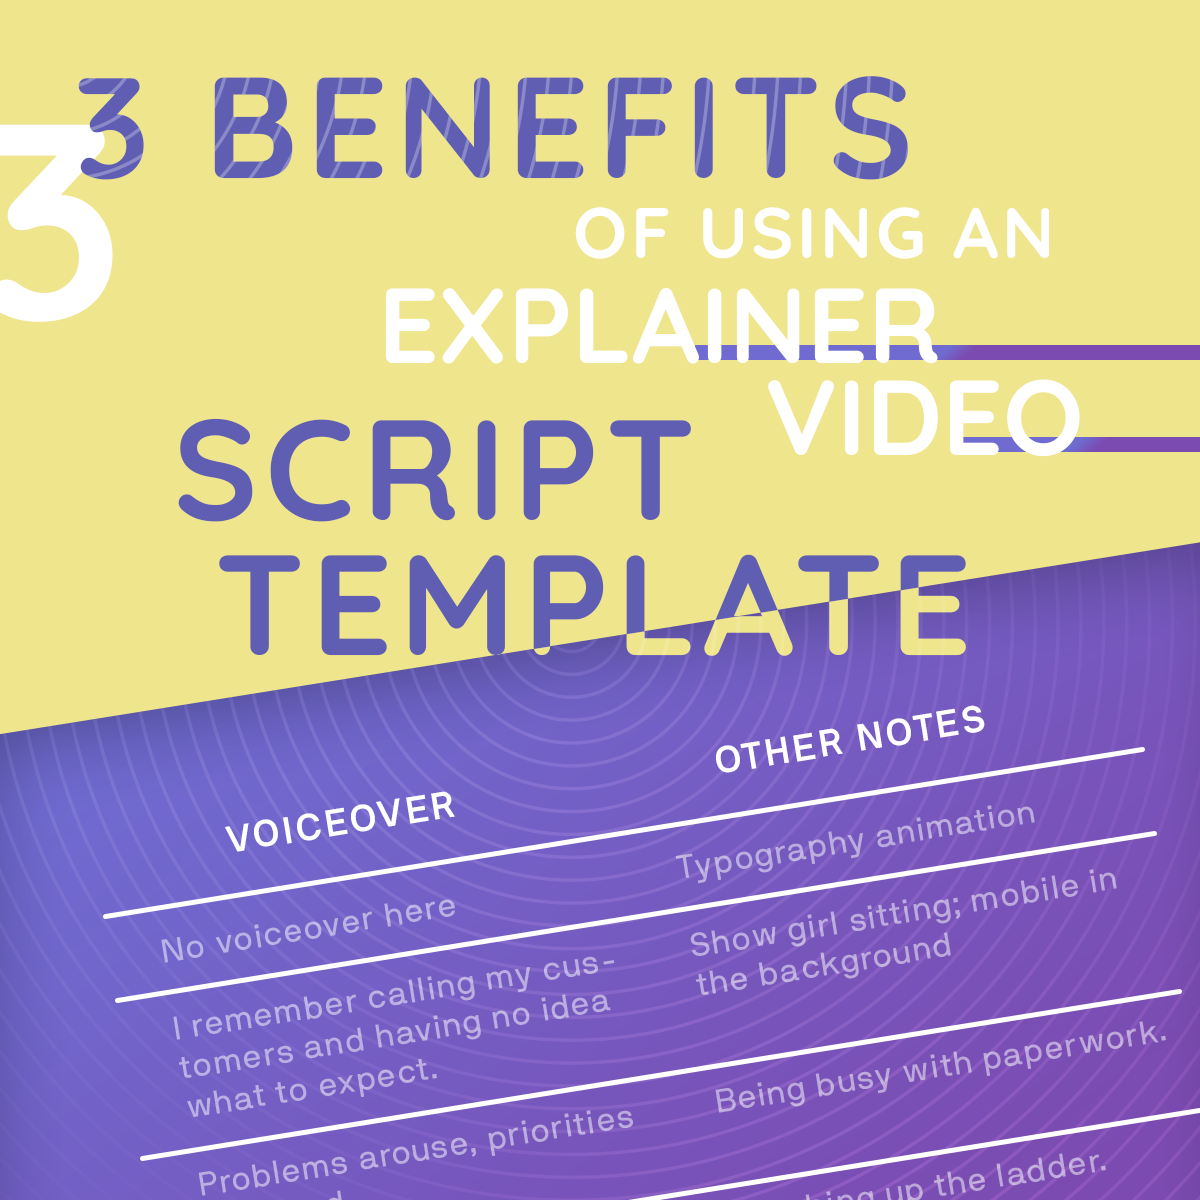 Graphic for 3 benefits of using an explainer video template